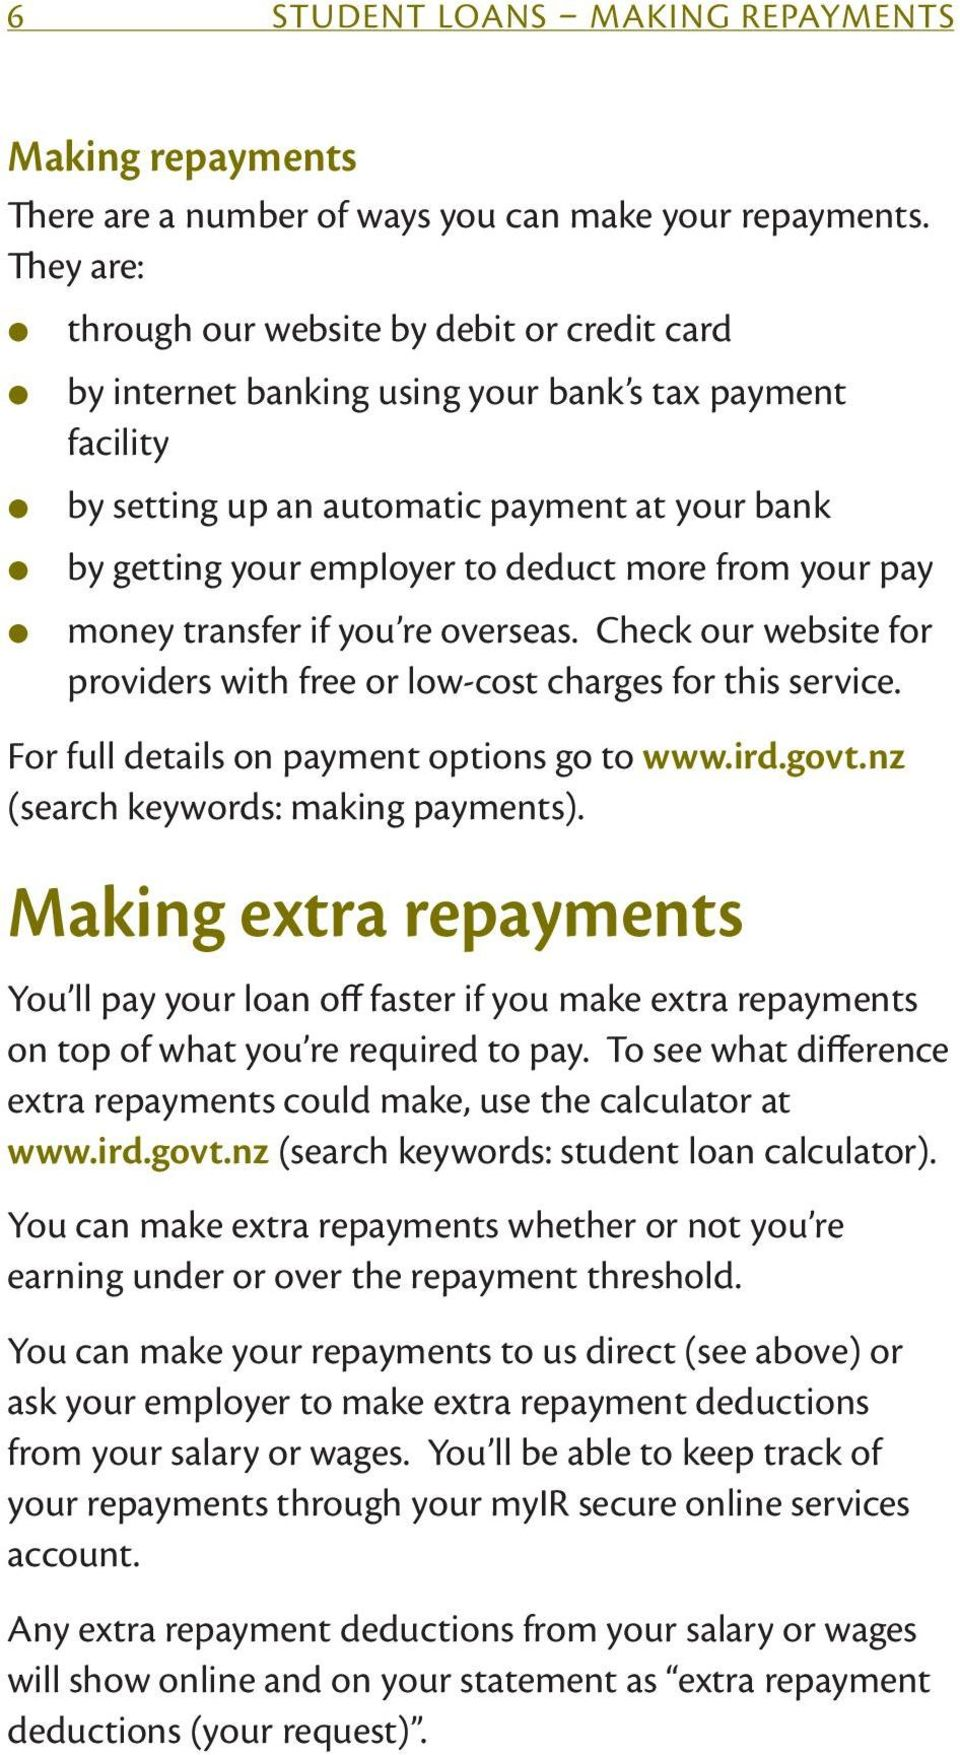 more from your pay money transfer if you re overseas. Check our website for providers with free or low-cost charges for this service. For full details on payment options go to www.ird.govt.